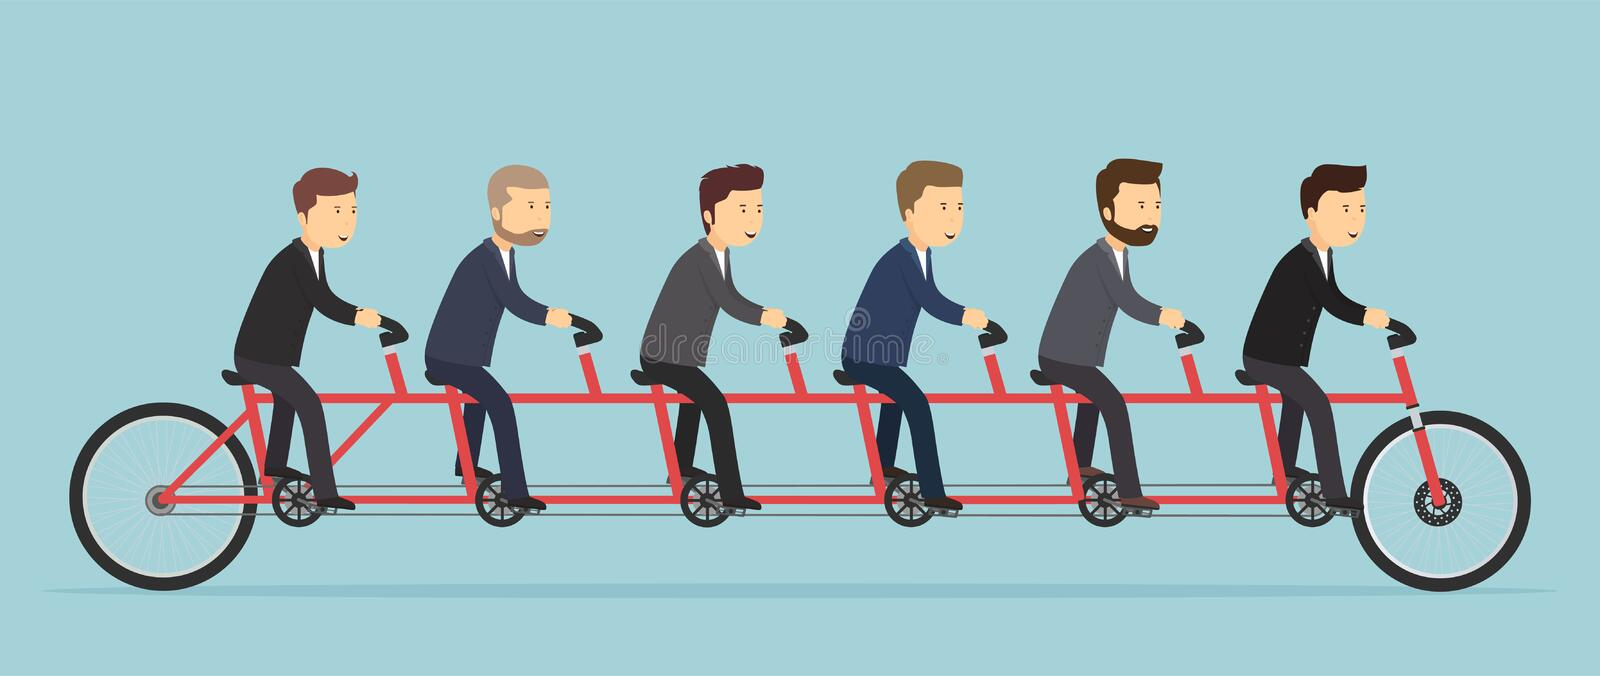 Business people riding on a five-seat bicycle. royalty free illustration